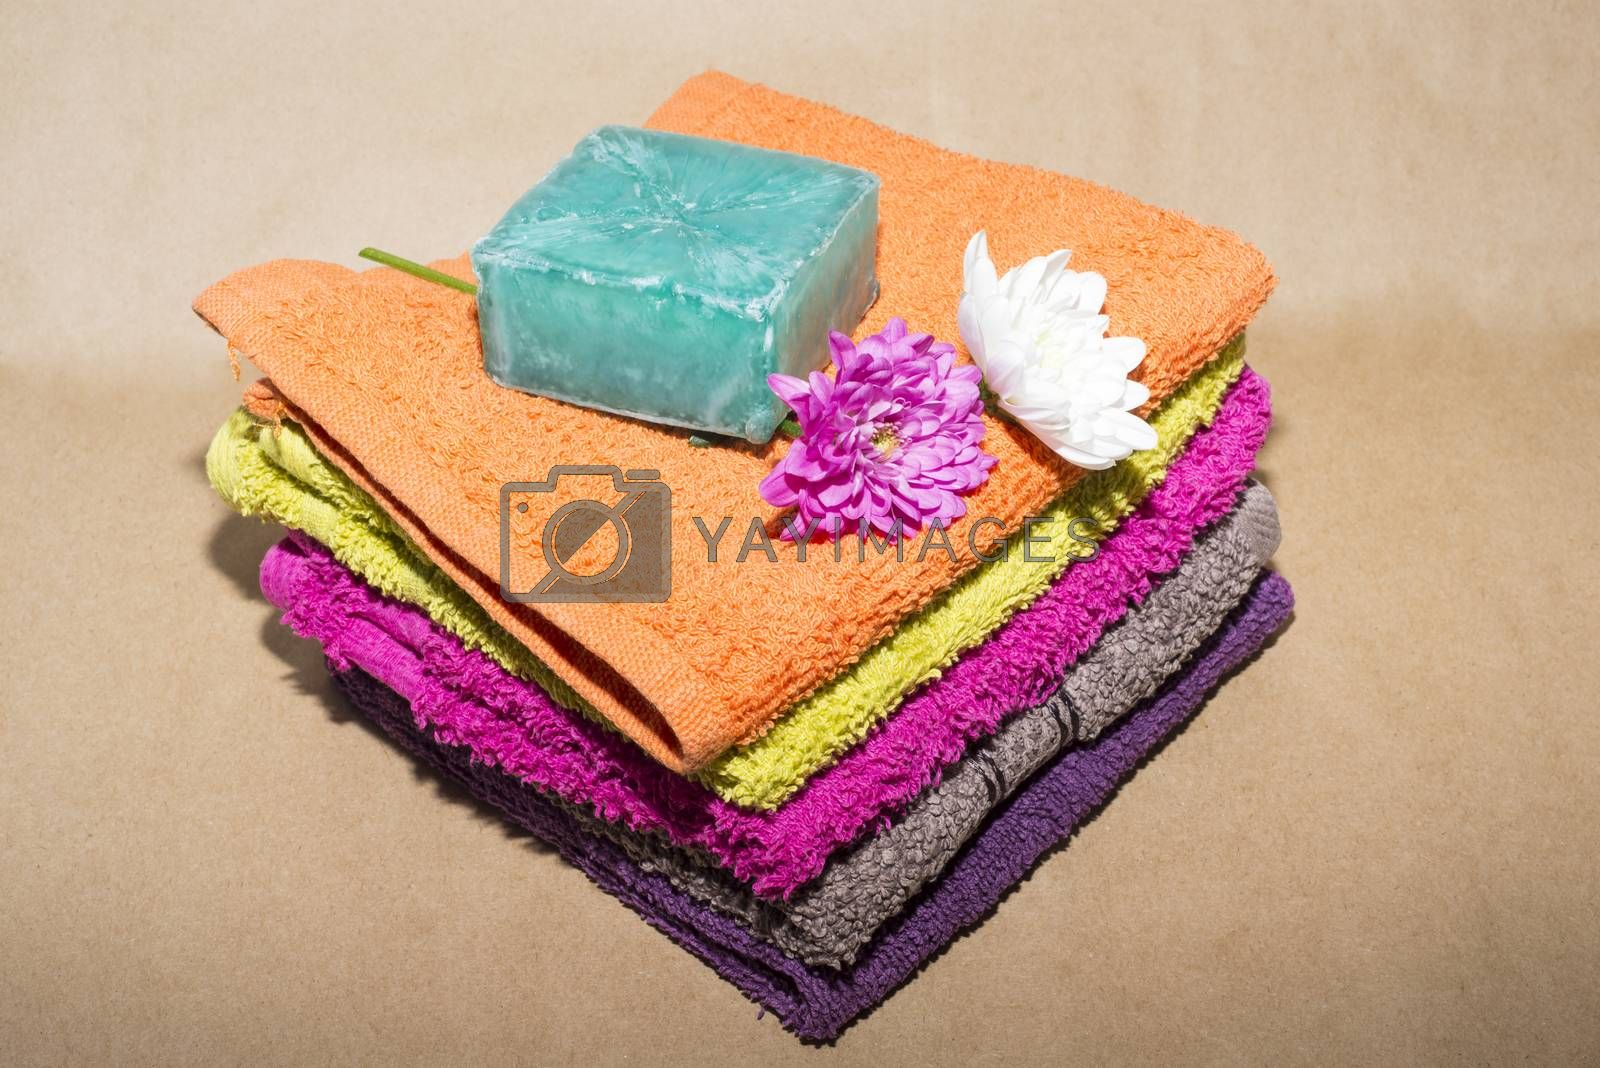 soap bar on top of facecloths off various shades with flowers